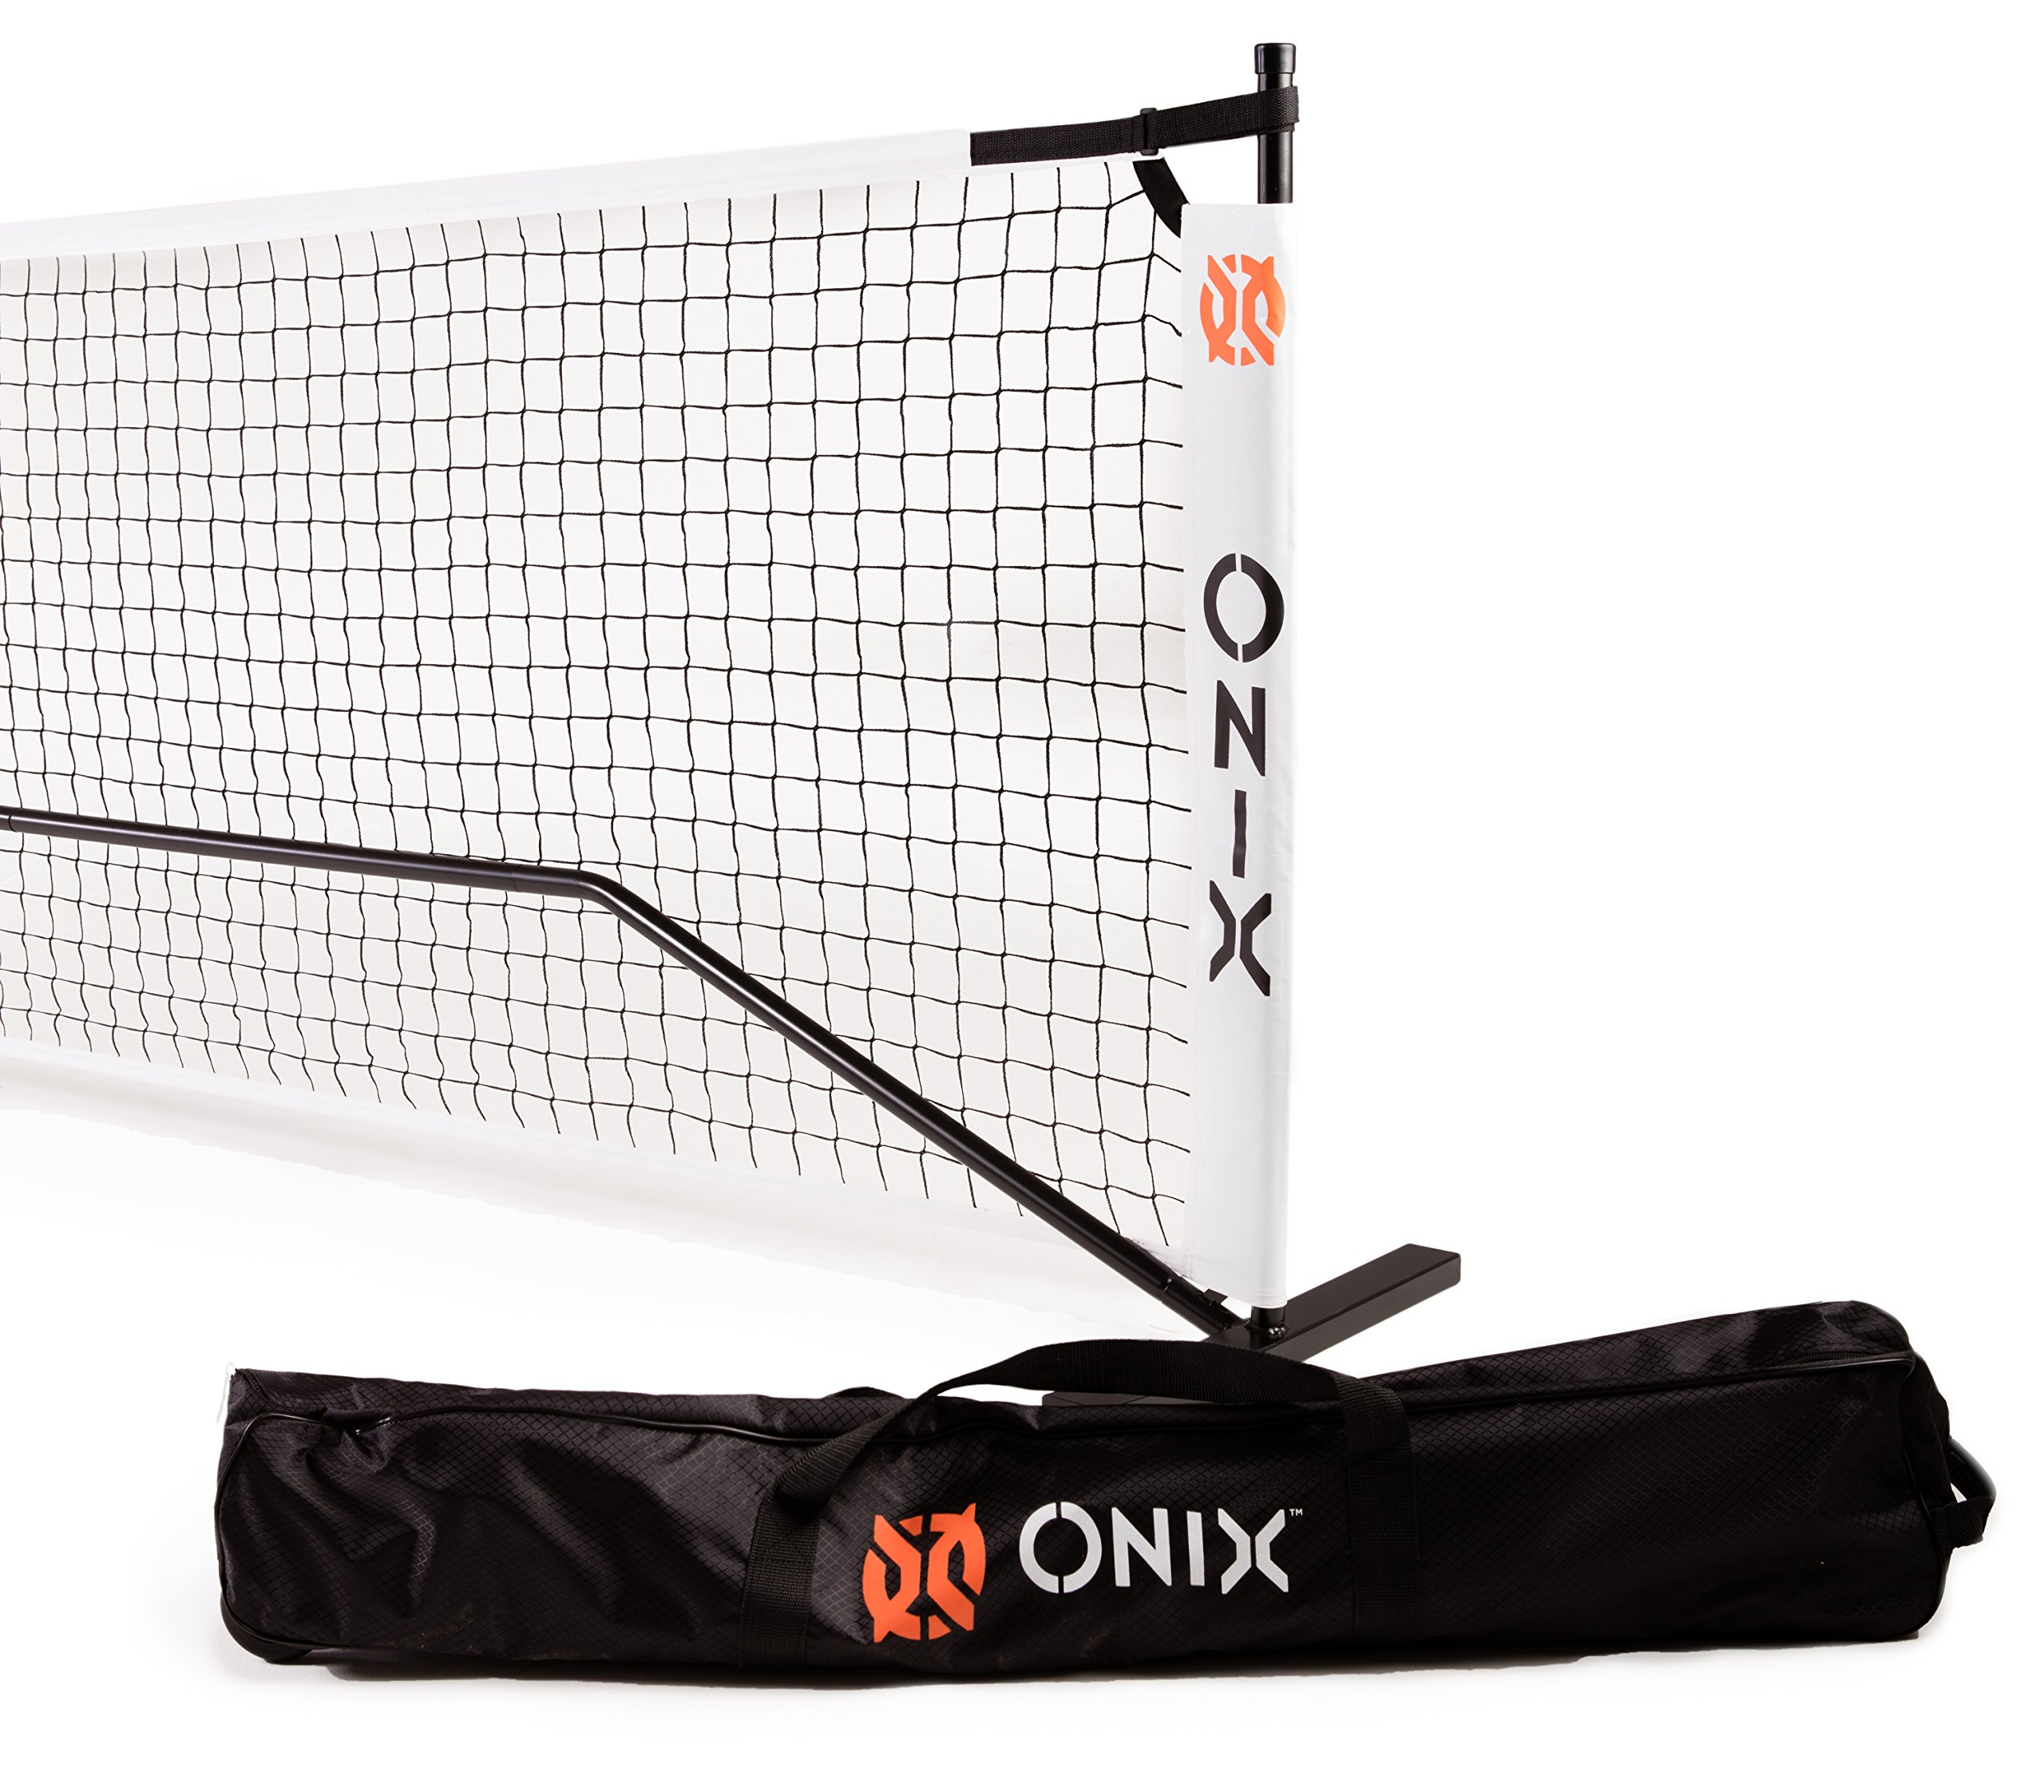 ONIX Portable Pickleball Net by Onix